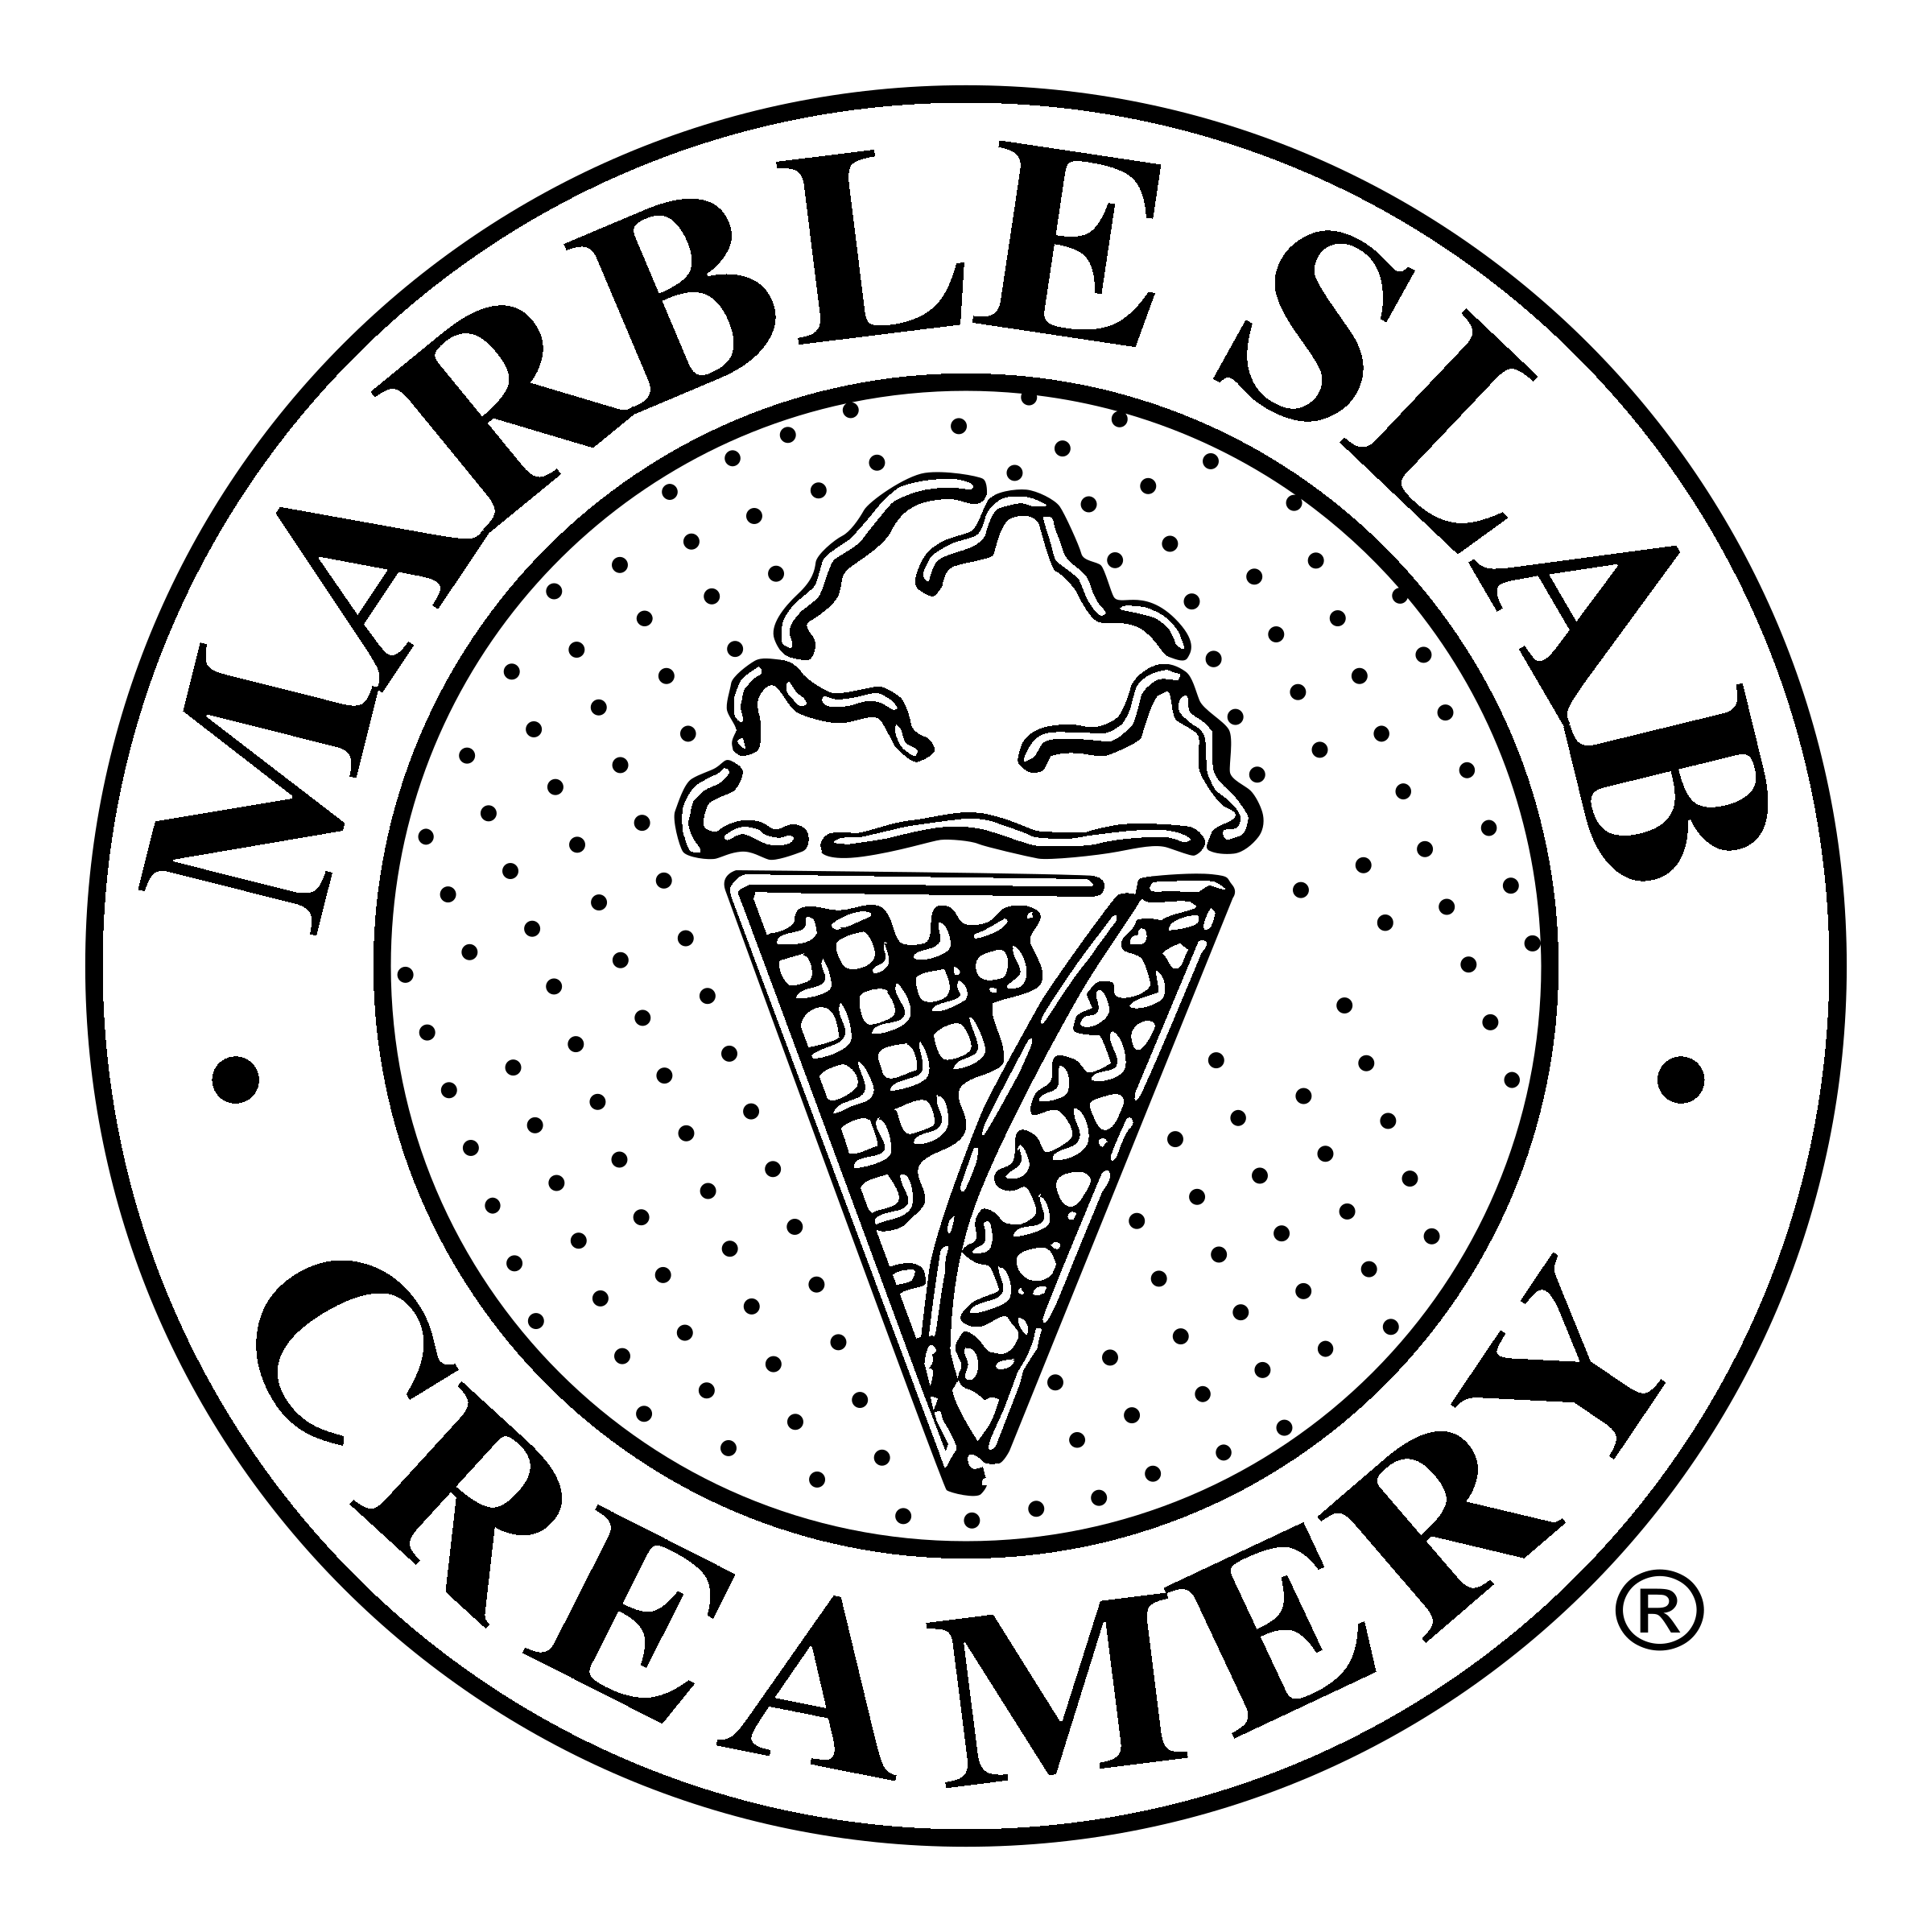 Vector effects marble. Slab creamery logo png